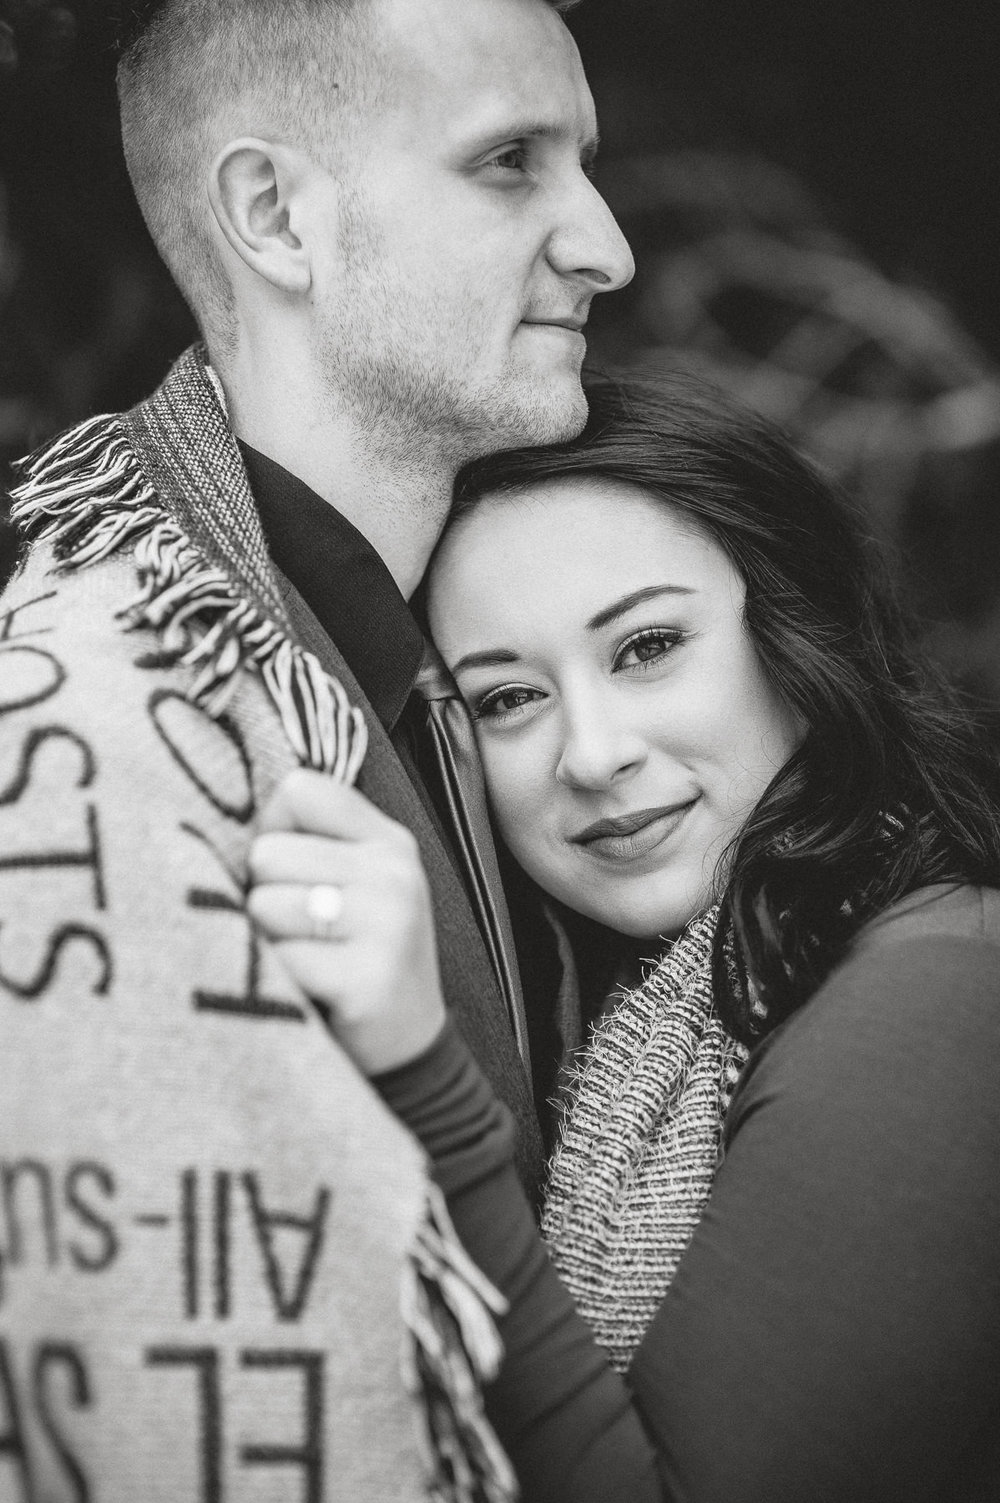 breighton-and-basette-photography-copyrighted-image-blog-abigail-and-ryne-engagement-031.jpg